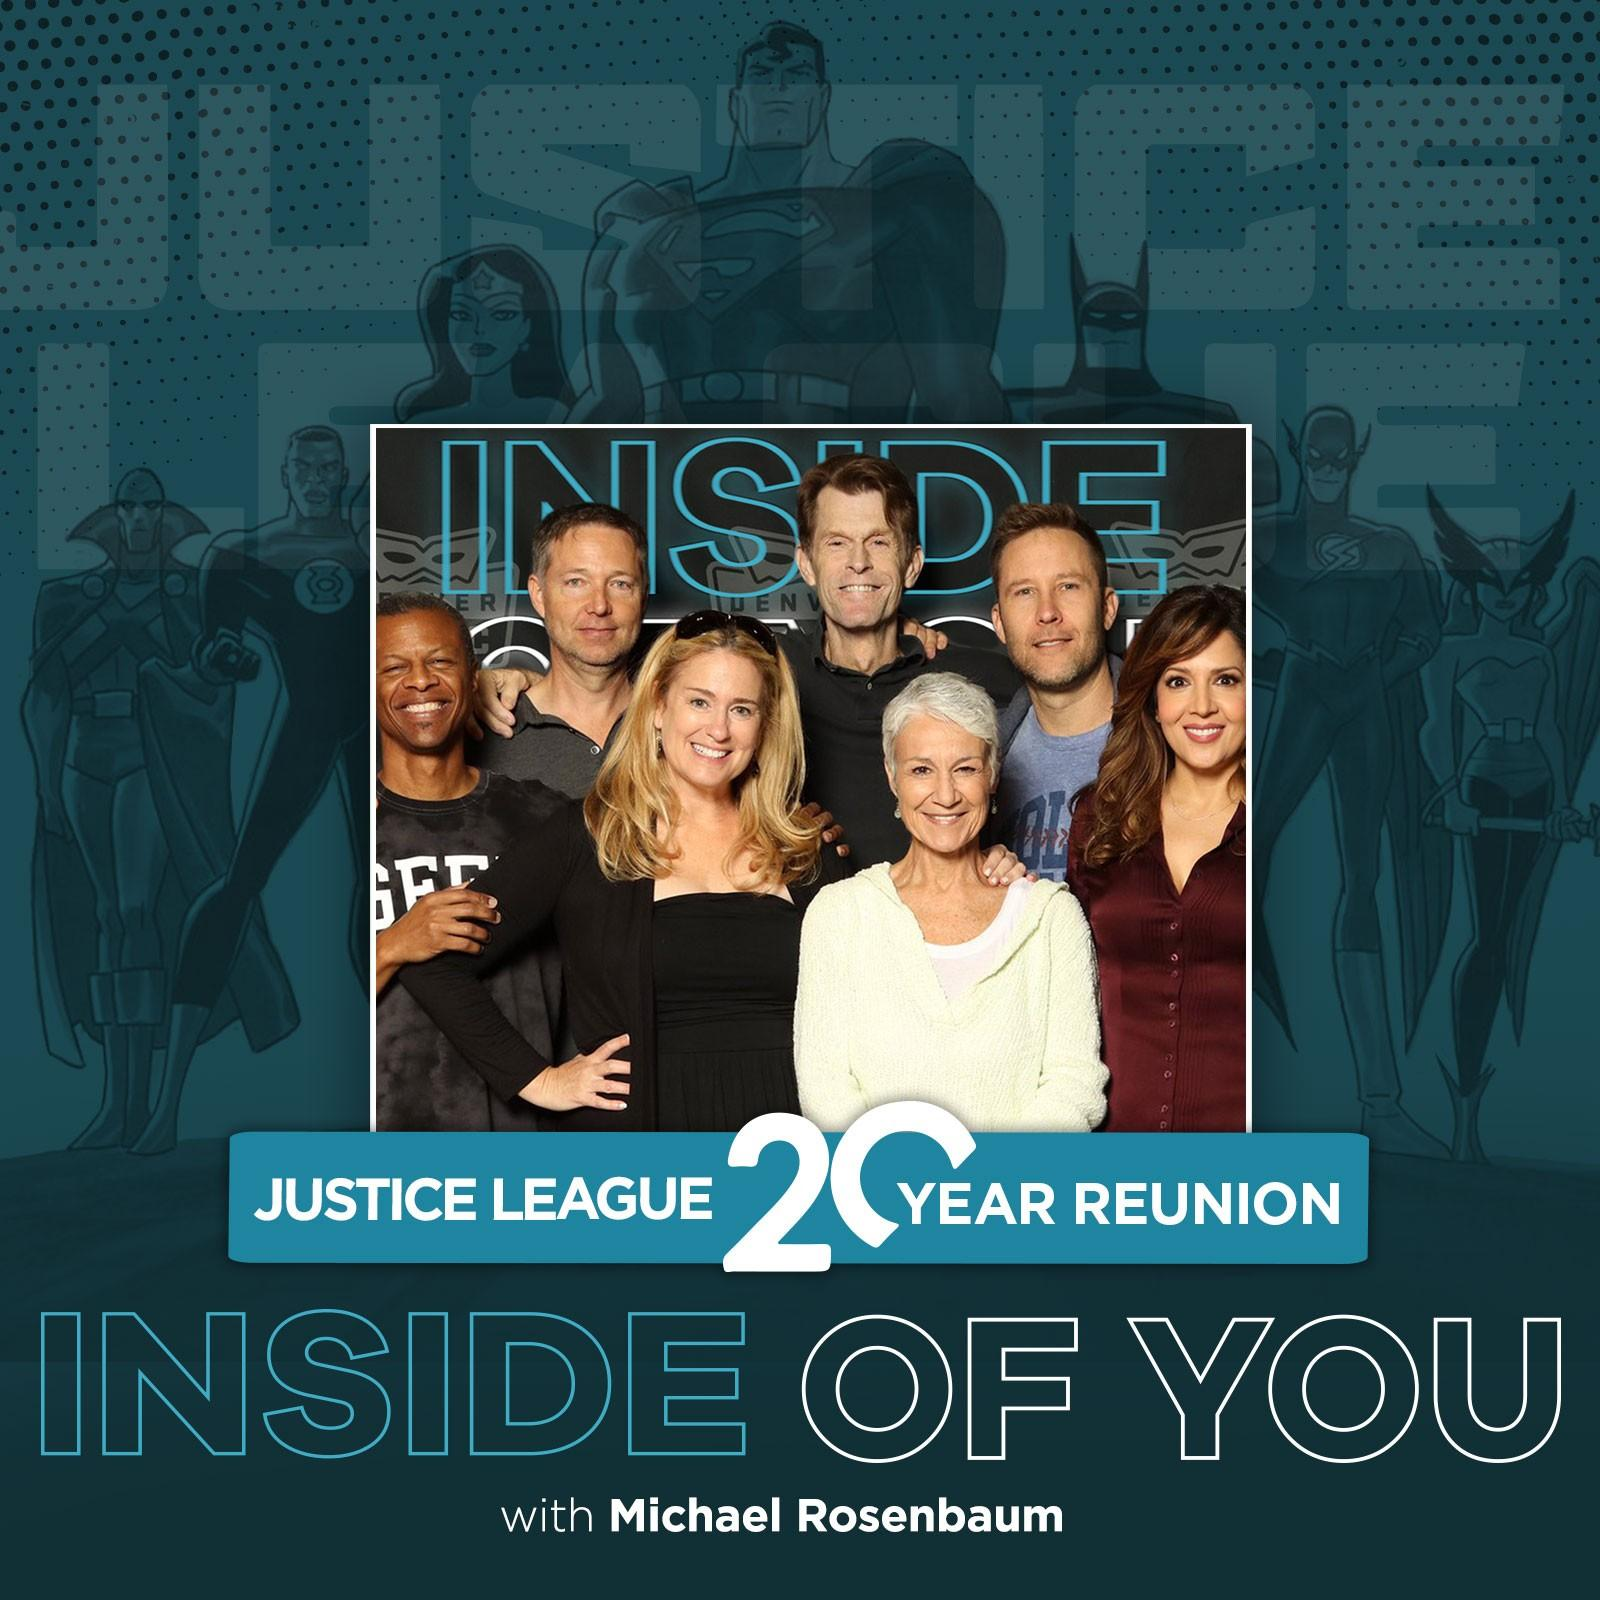 THE CAST OF JUSTICE LEAGUE REUNITES ON MICHAEL ROSENBAUM'S INSIDE OF YOU PODCAST